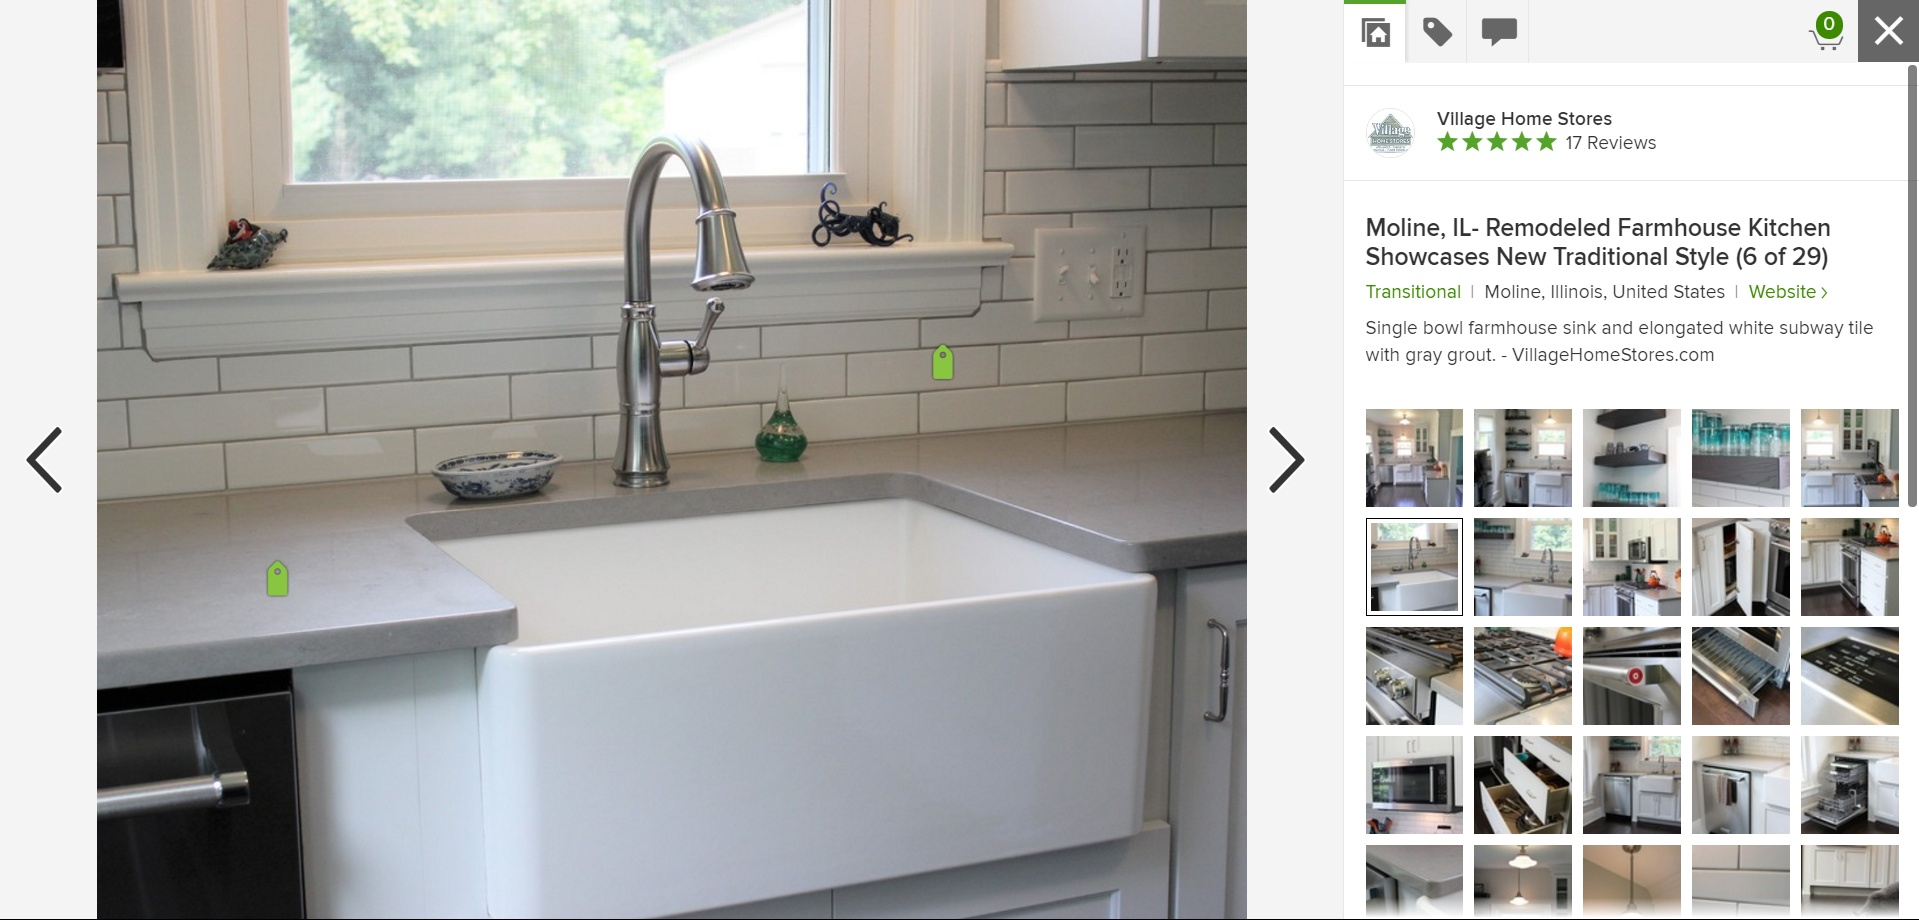 Kitchen sink with matching black glass tap landing and sliding cover - 4776467611516928